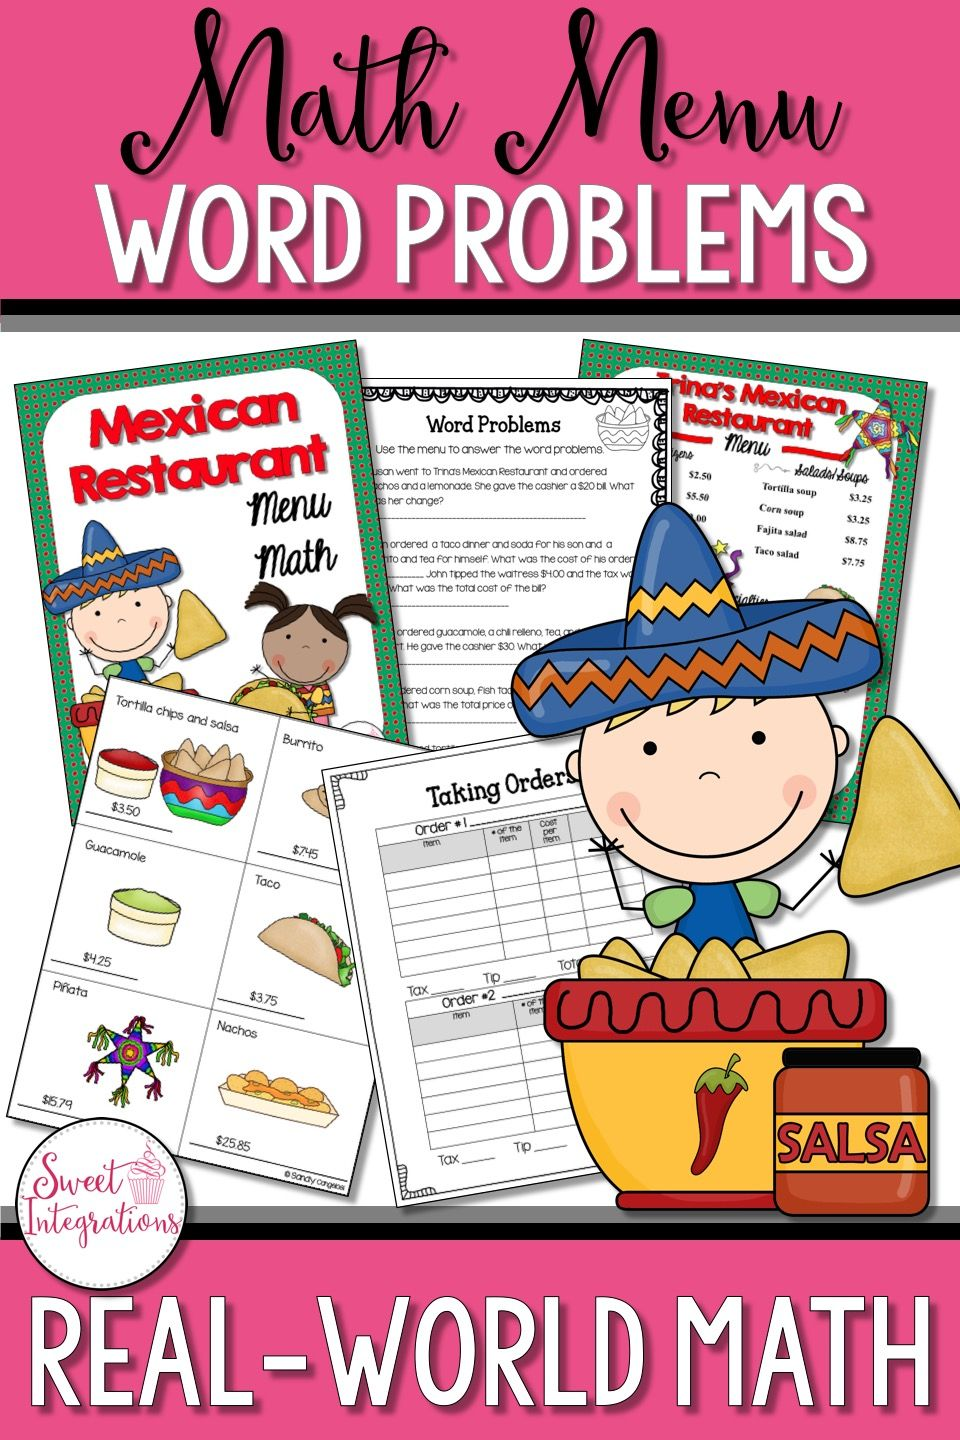 fun math problems Free printable math worksheets for grade 4 this is a comprehensive collection of free printable math worksheets for grade 4, organized by topics such as addition, subtraction, mental math, place value, multiplication, division, long division, factors, measurement, fractions, and decimals.